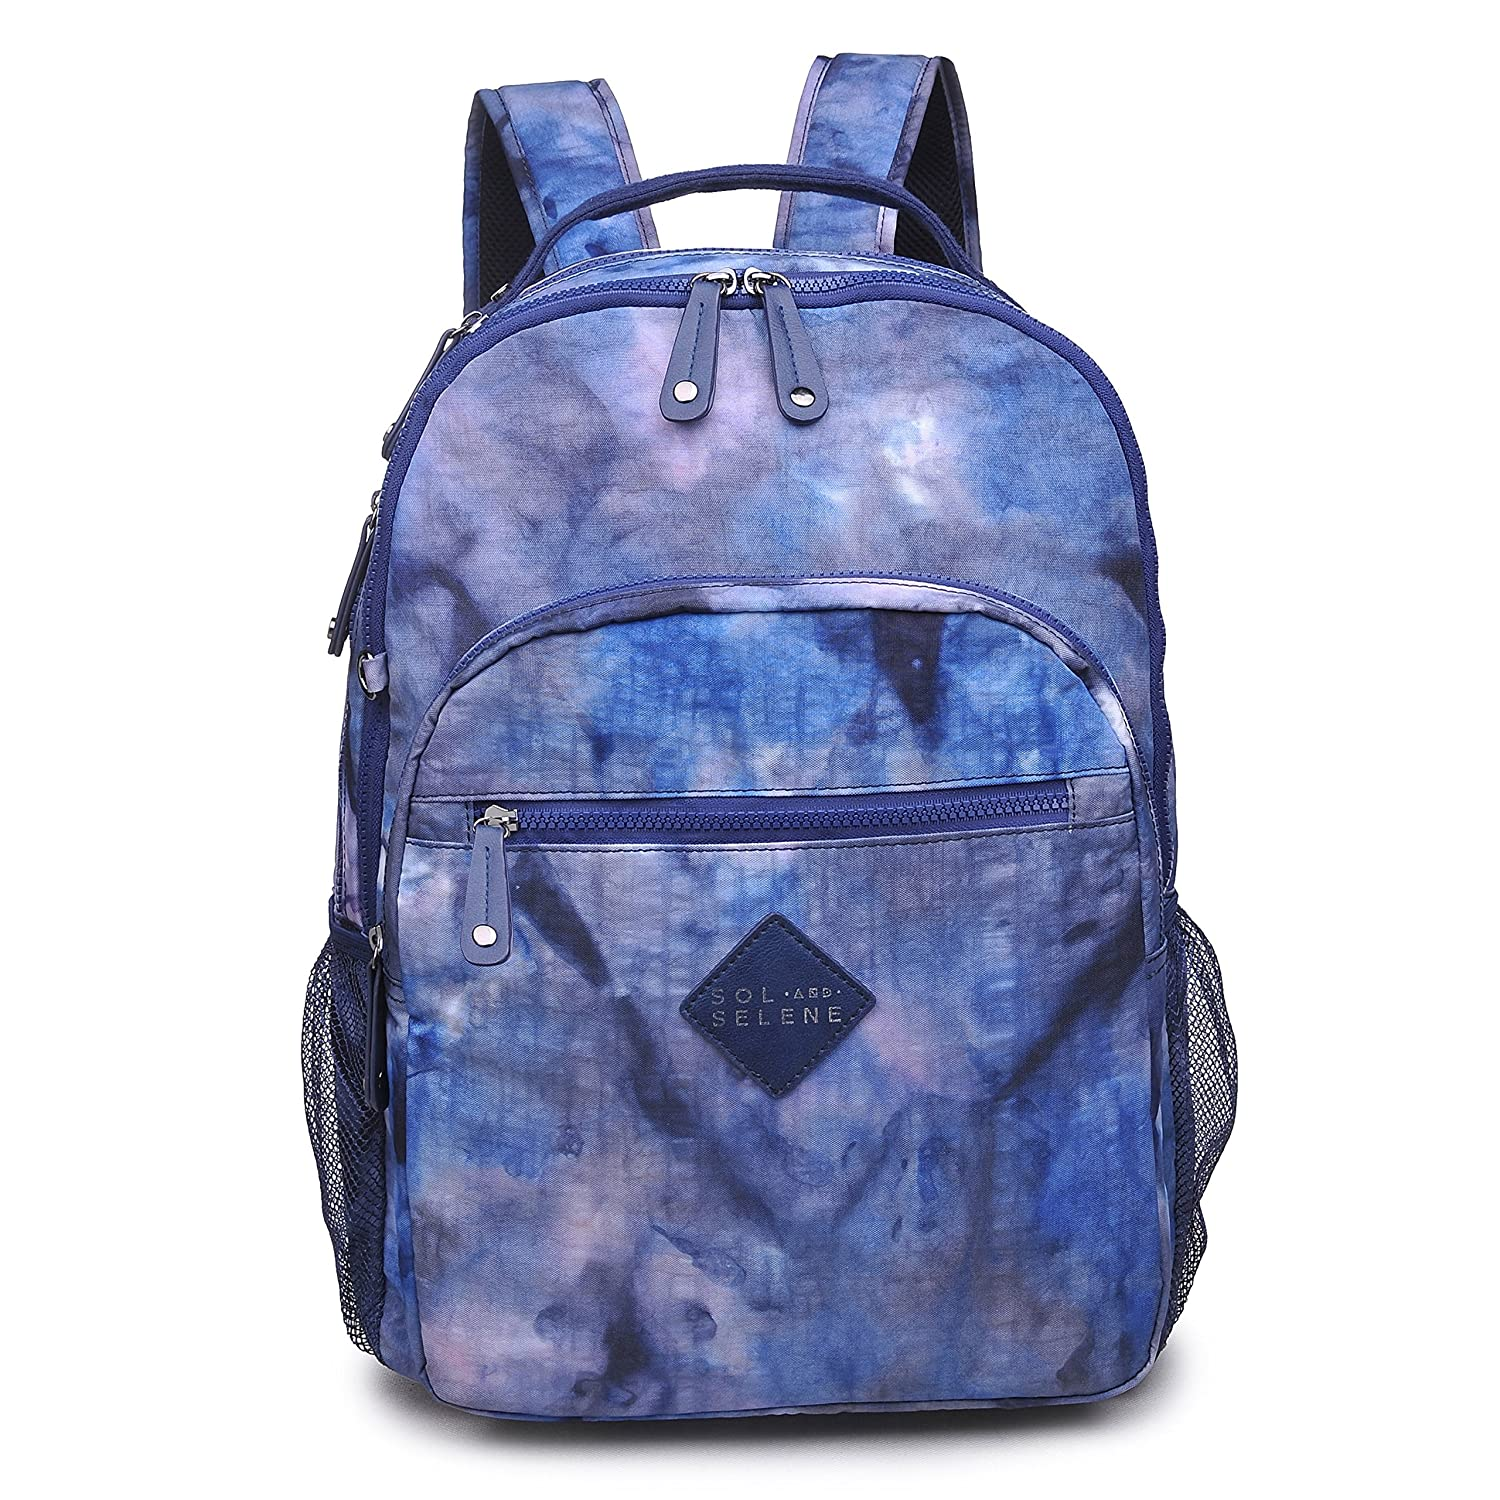 Sol and Selene Mantra Backpack